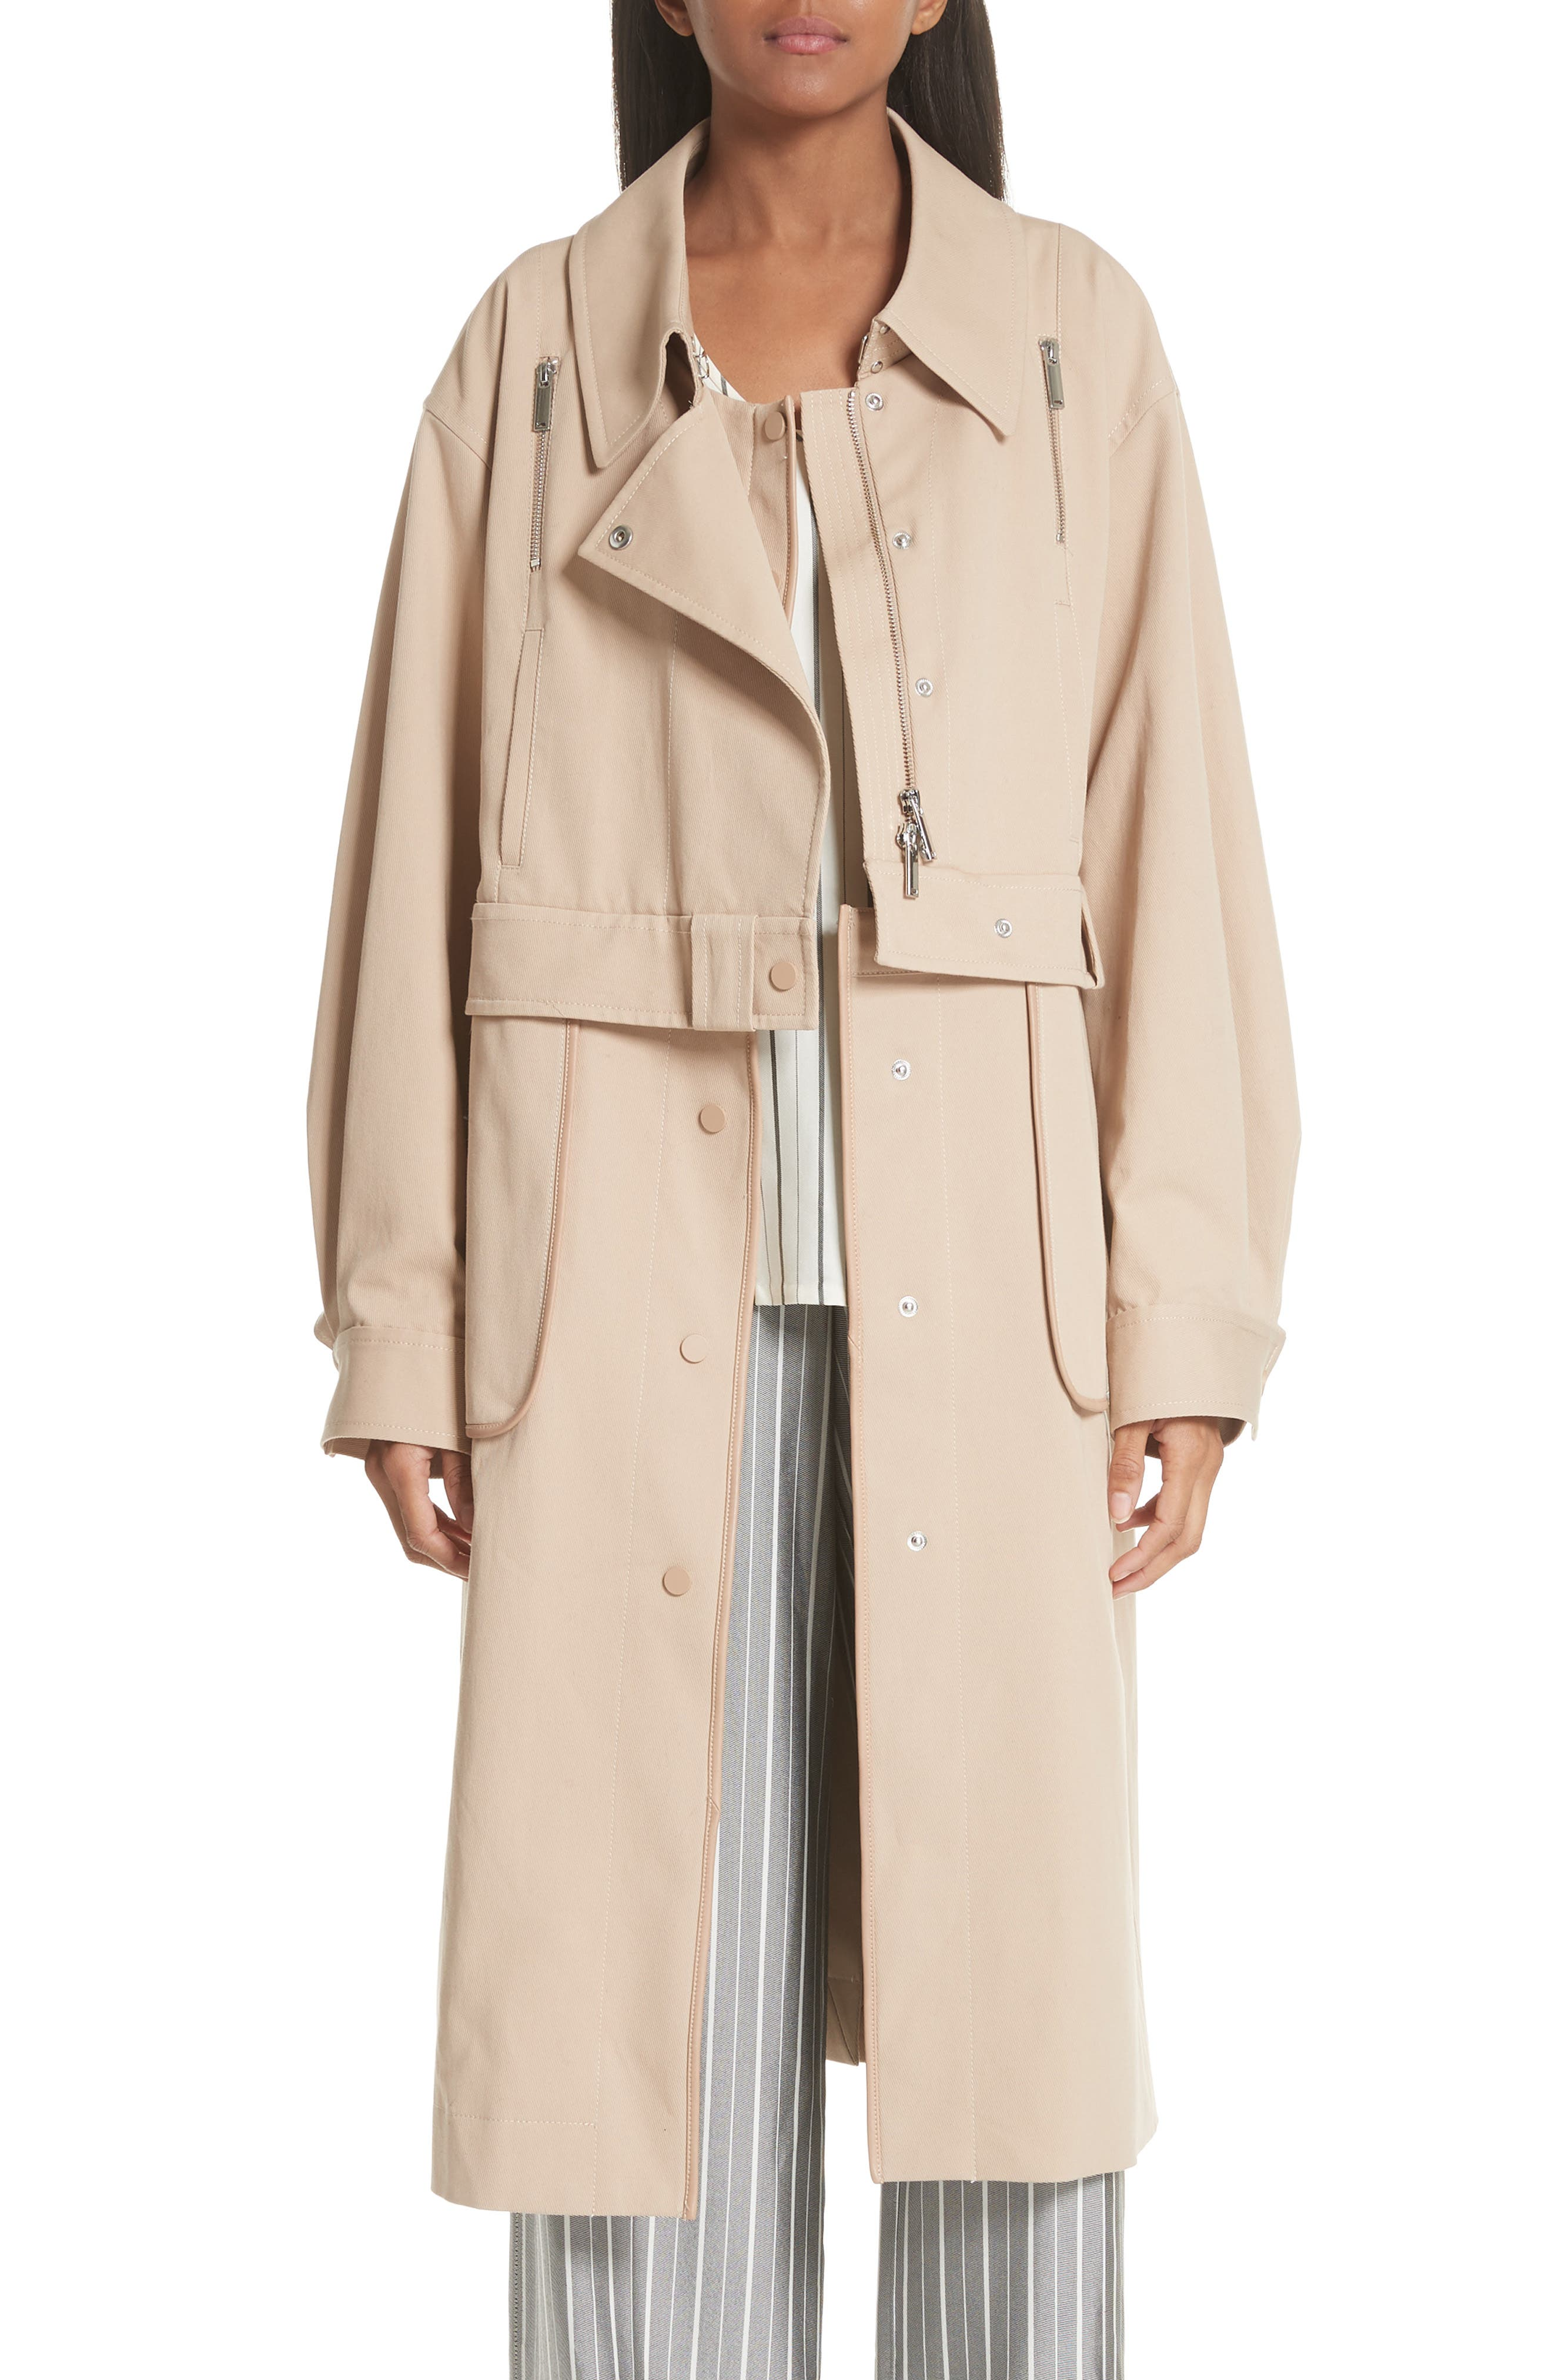 GREY JASON WU Sailor Stretch Twill Convertible Trench Coat in Fawn